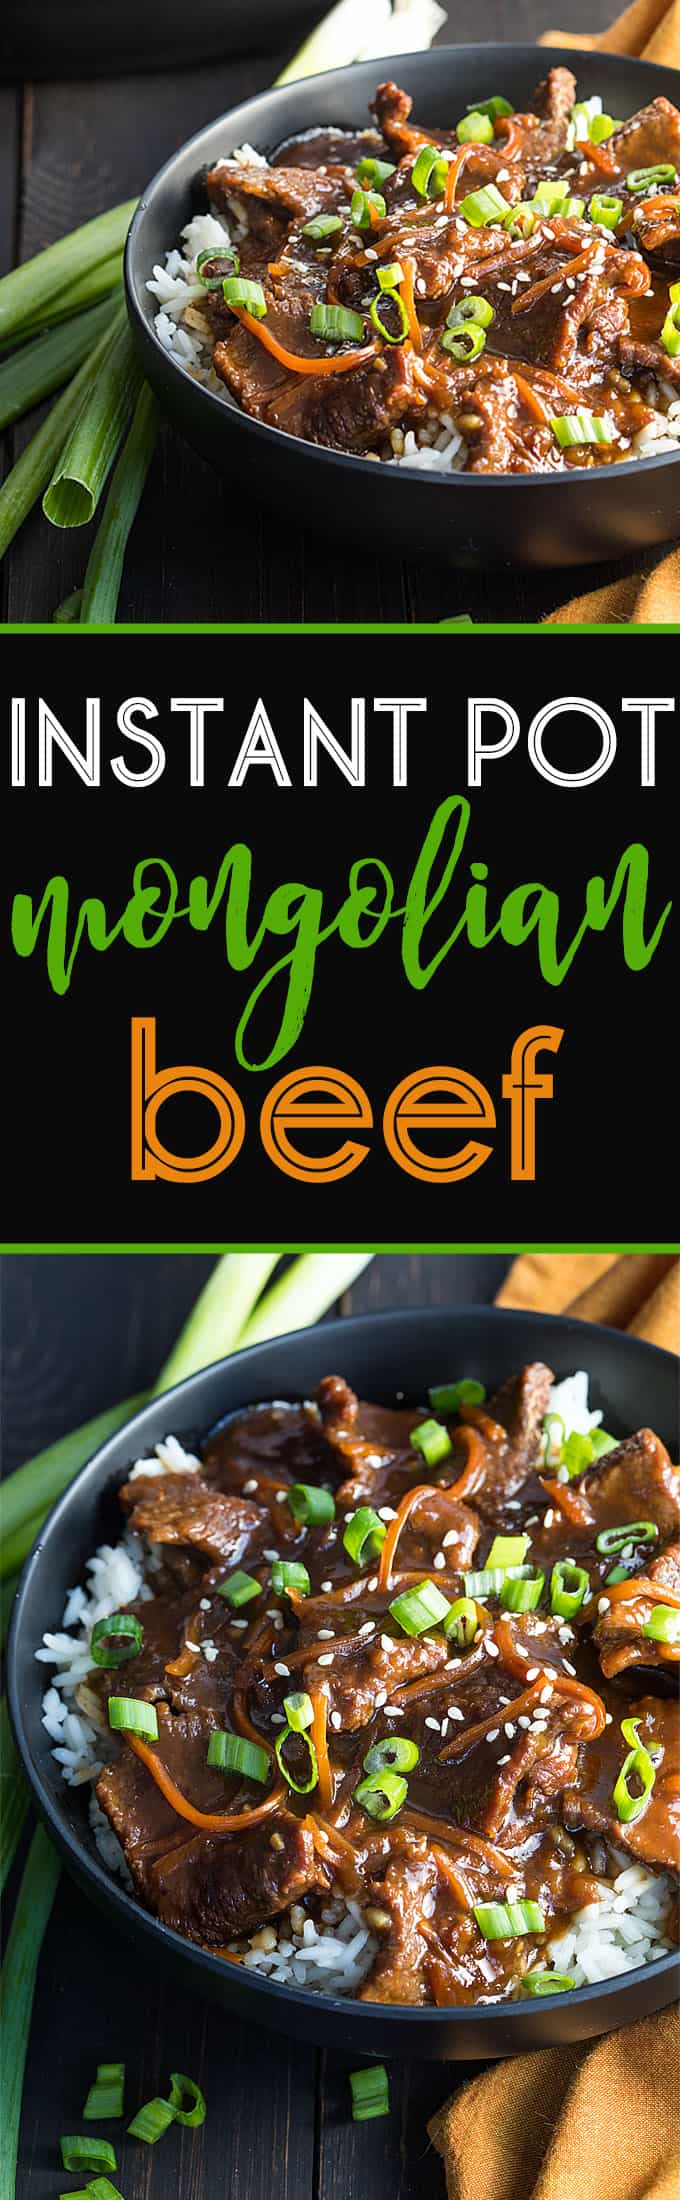 A two image vertical collage of instant pot Mongolian beef with overlay text in the center.